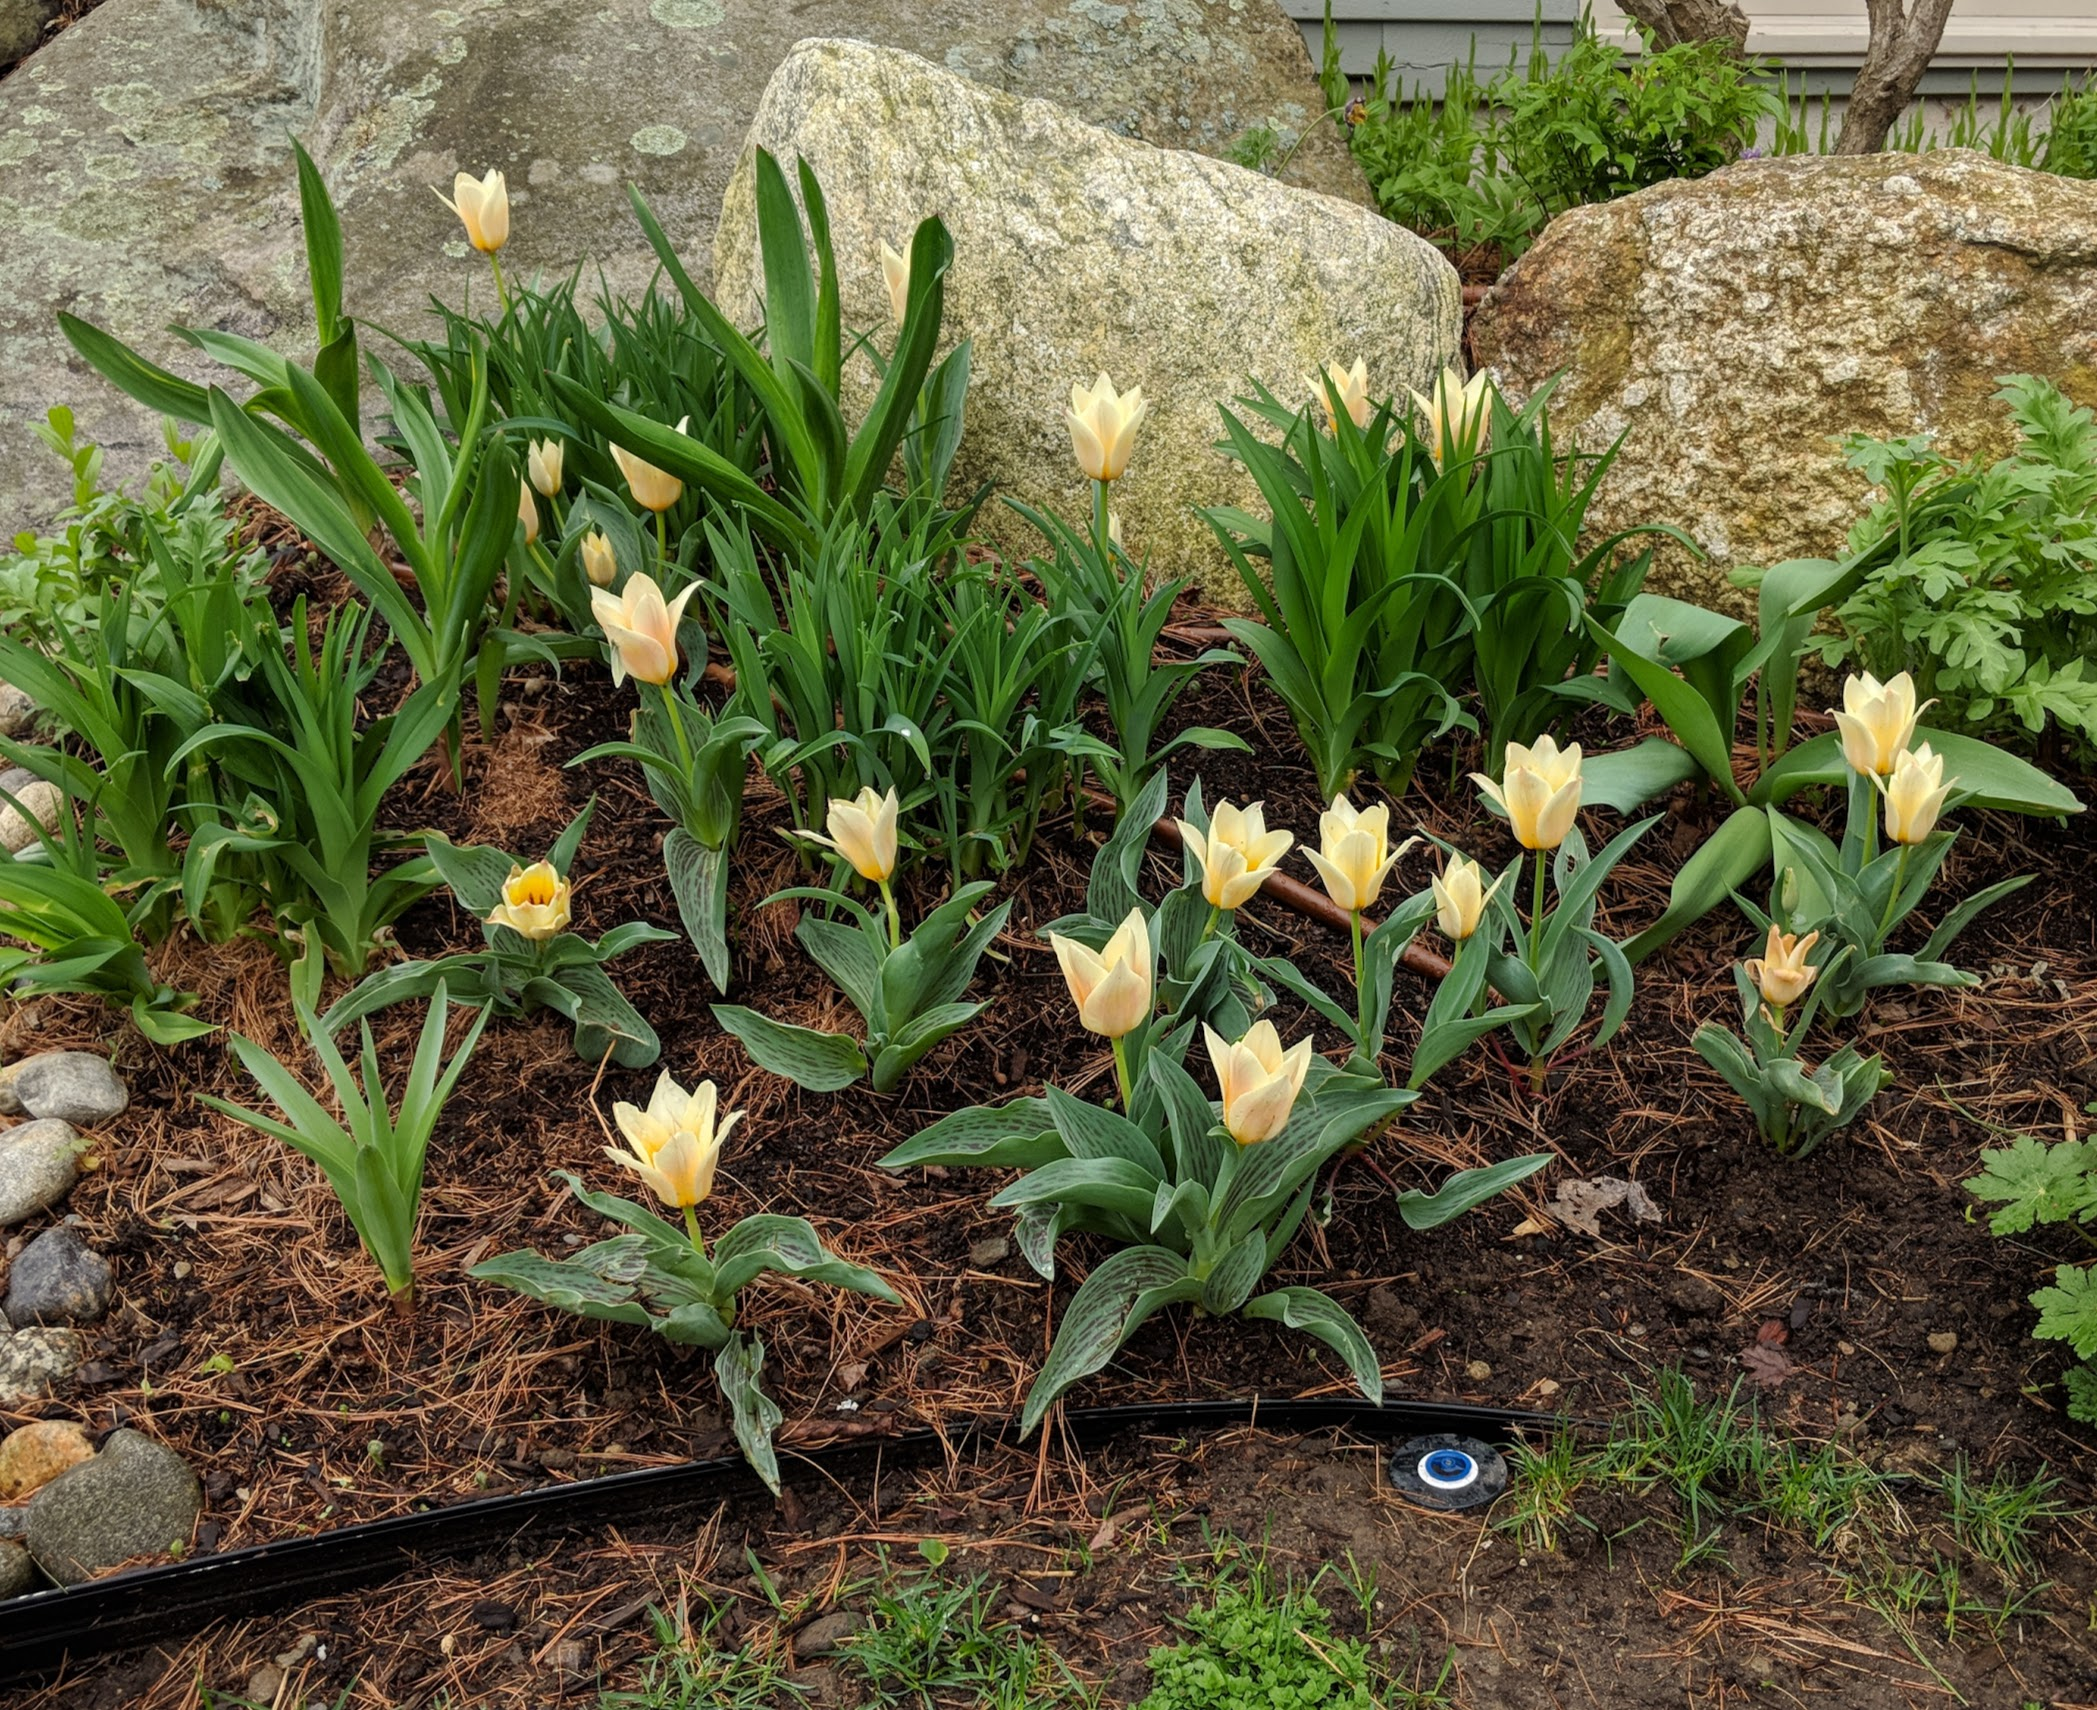 Fur Elise tulips offer soft beauty months before the daylilies burst into color